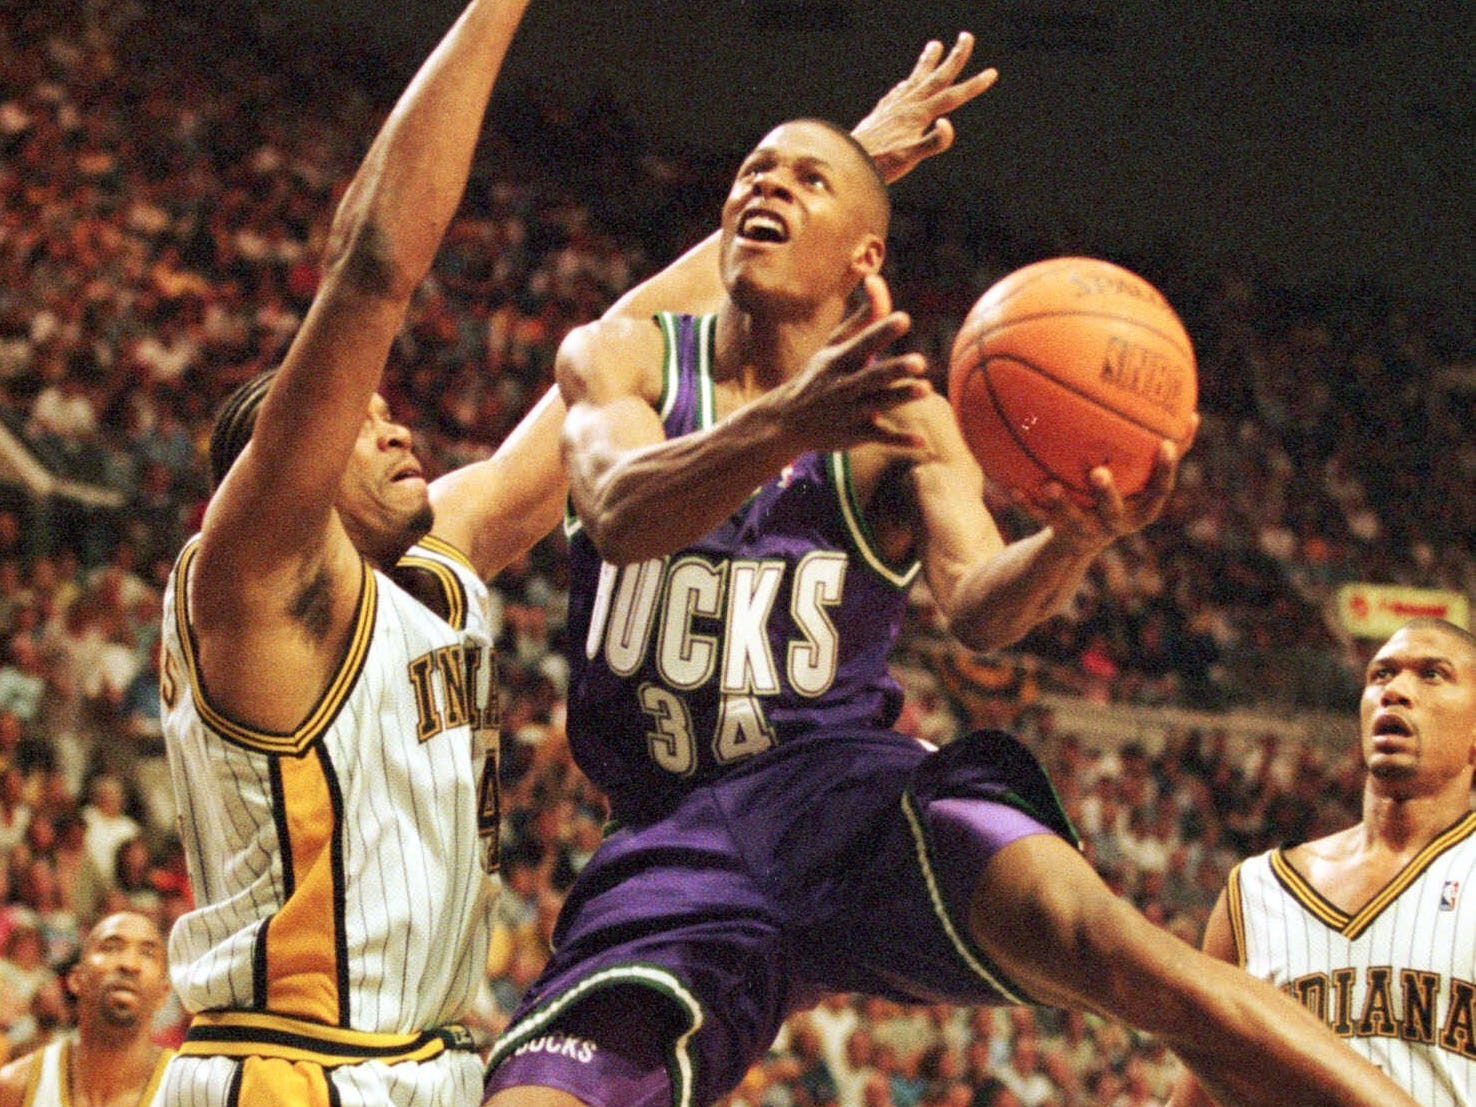 1999: Milwaukee Bucks' Ray Allen (34) drives against Indiana Pacers' Sam Perkins (left) and Jalen Rose (right) during the second quarter of the first round of the Eastern Conference playoffs in Indianapolis on May 9, 1999.